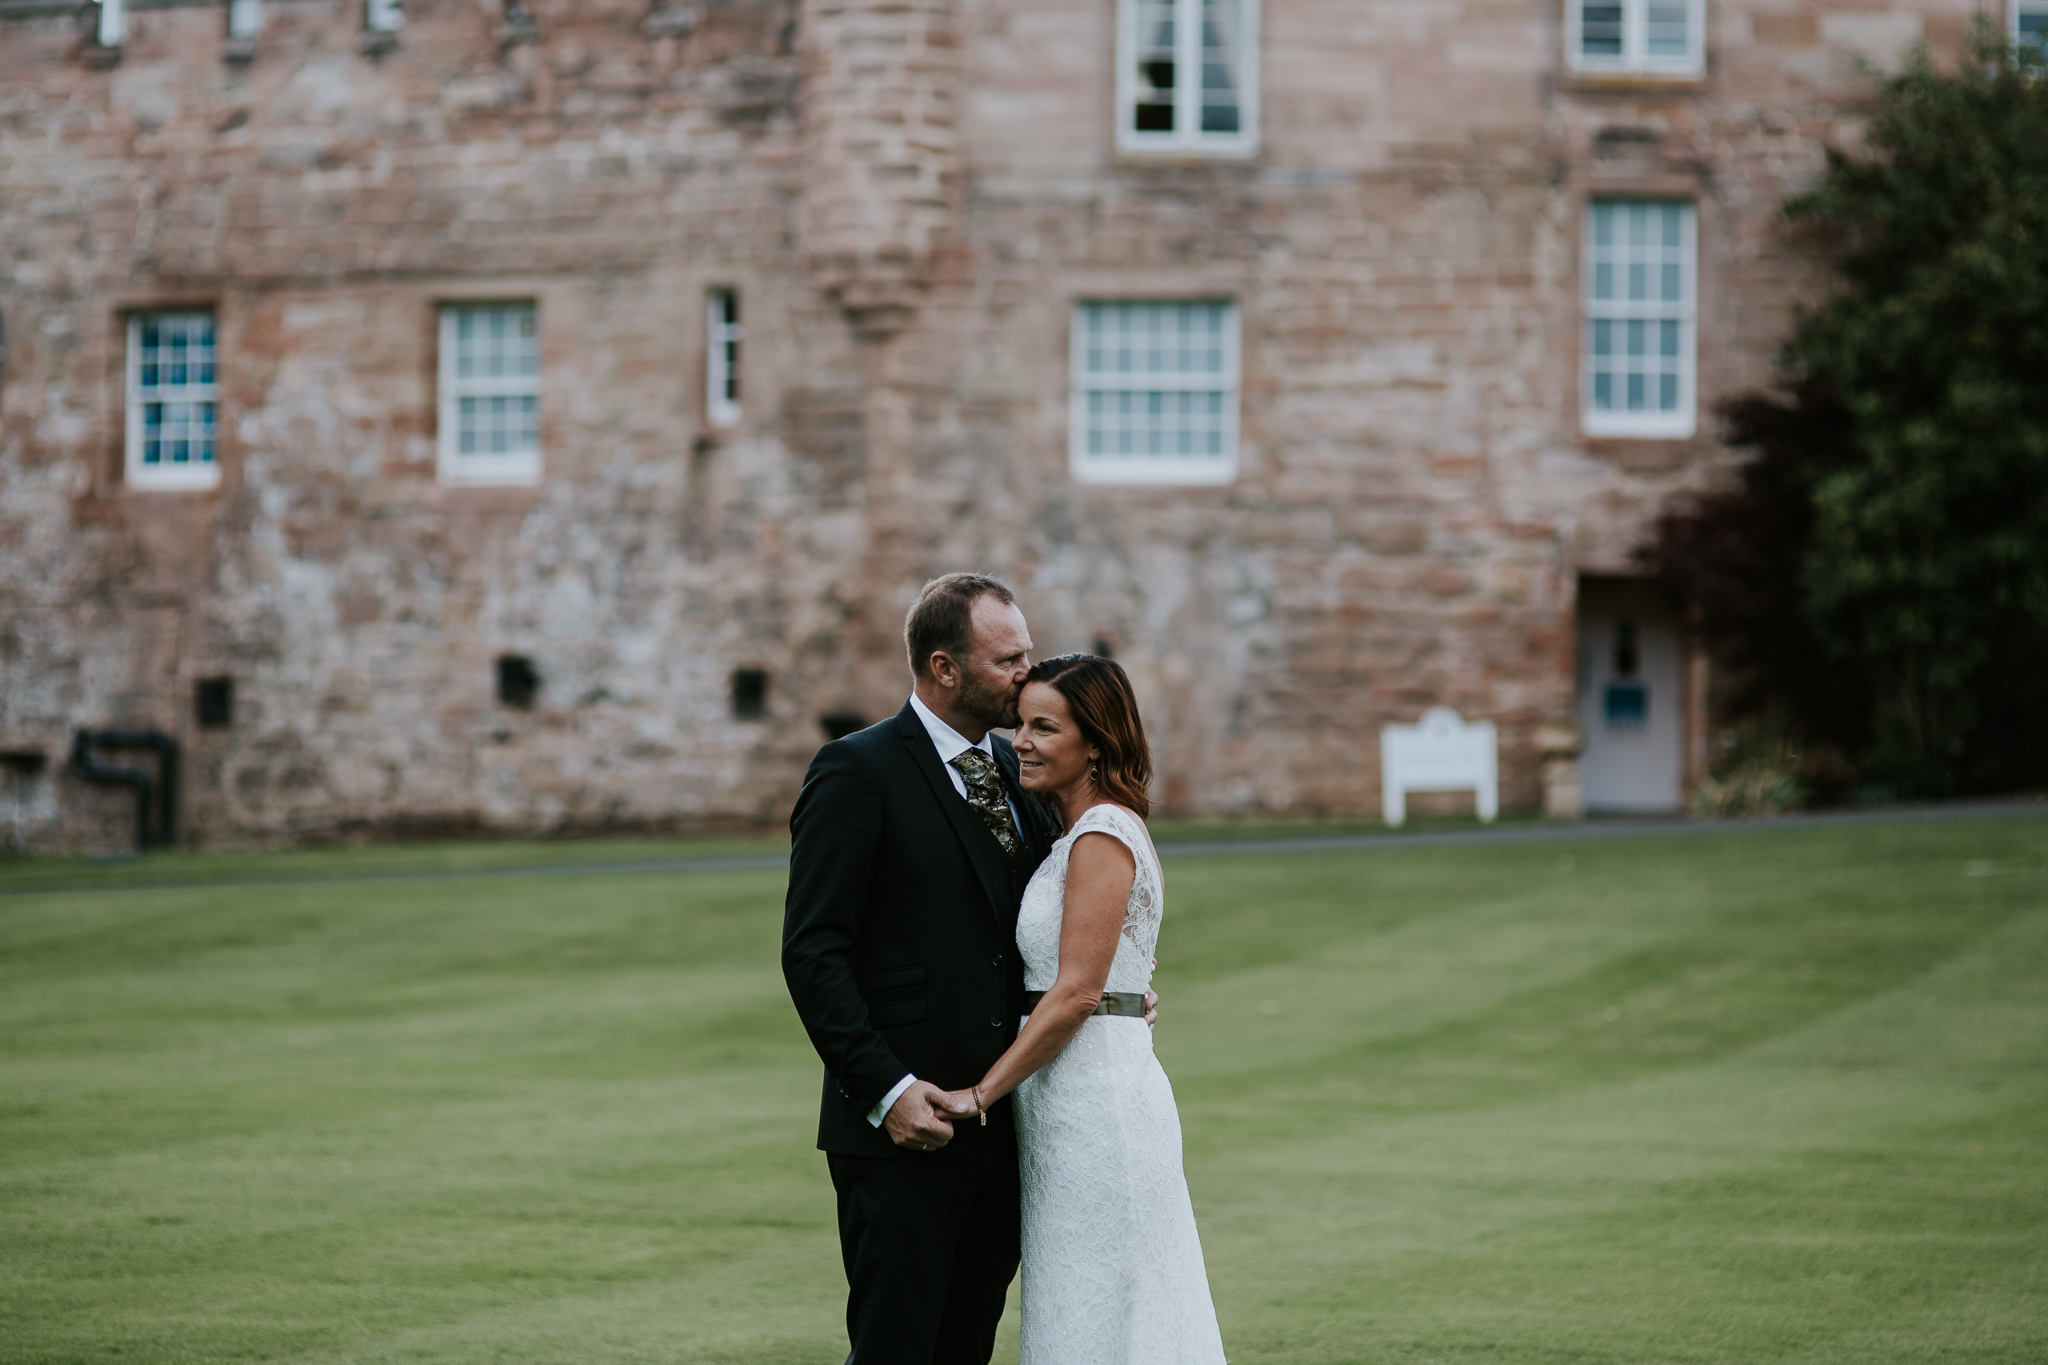 Romantic couple shoot at Dalhousie castle.